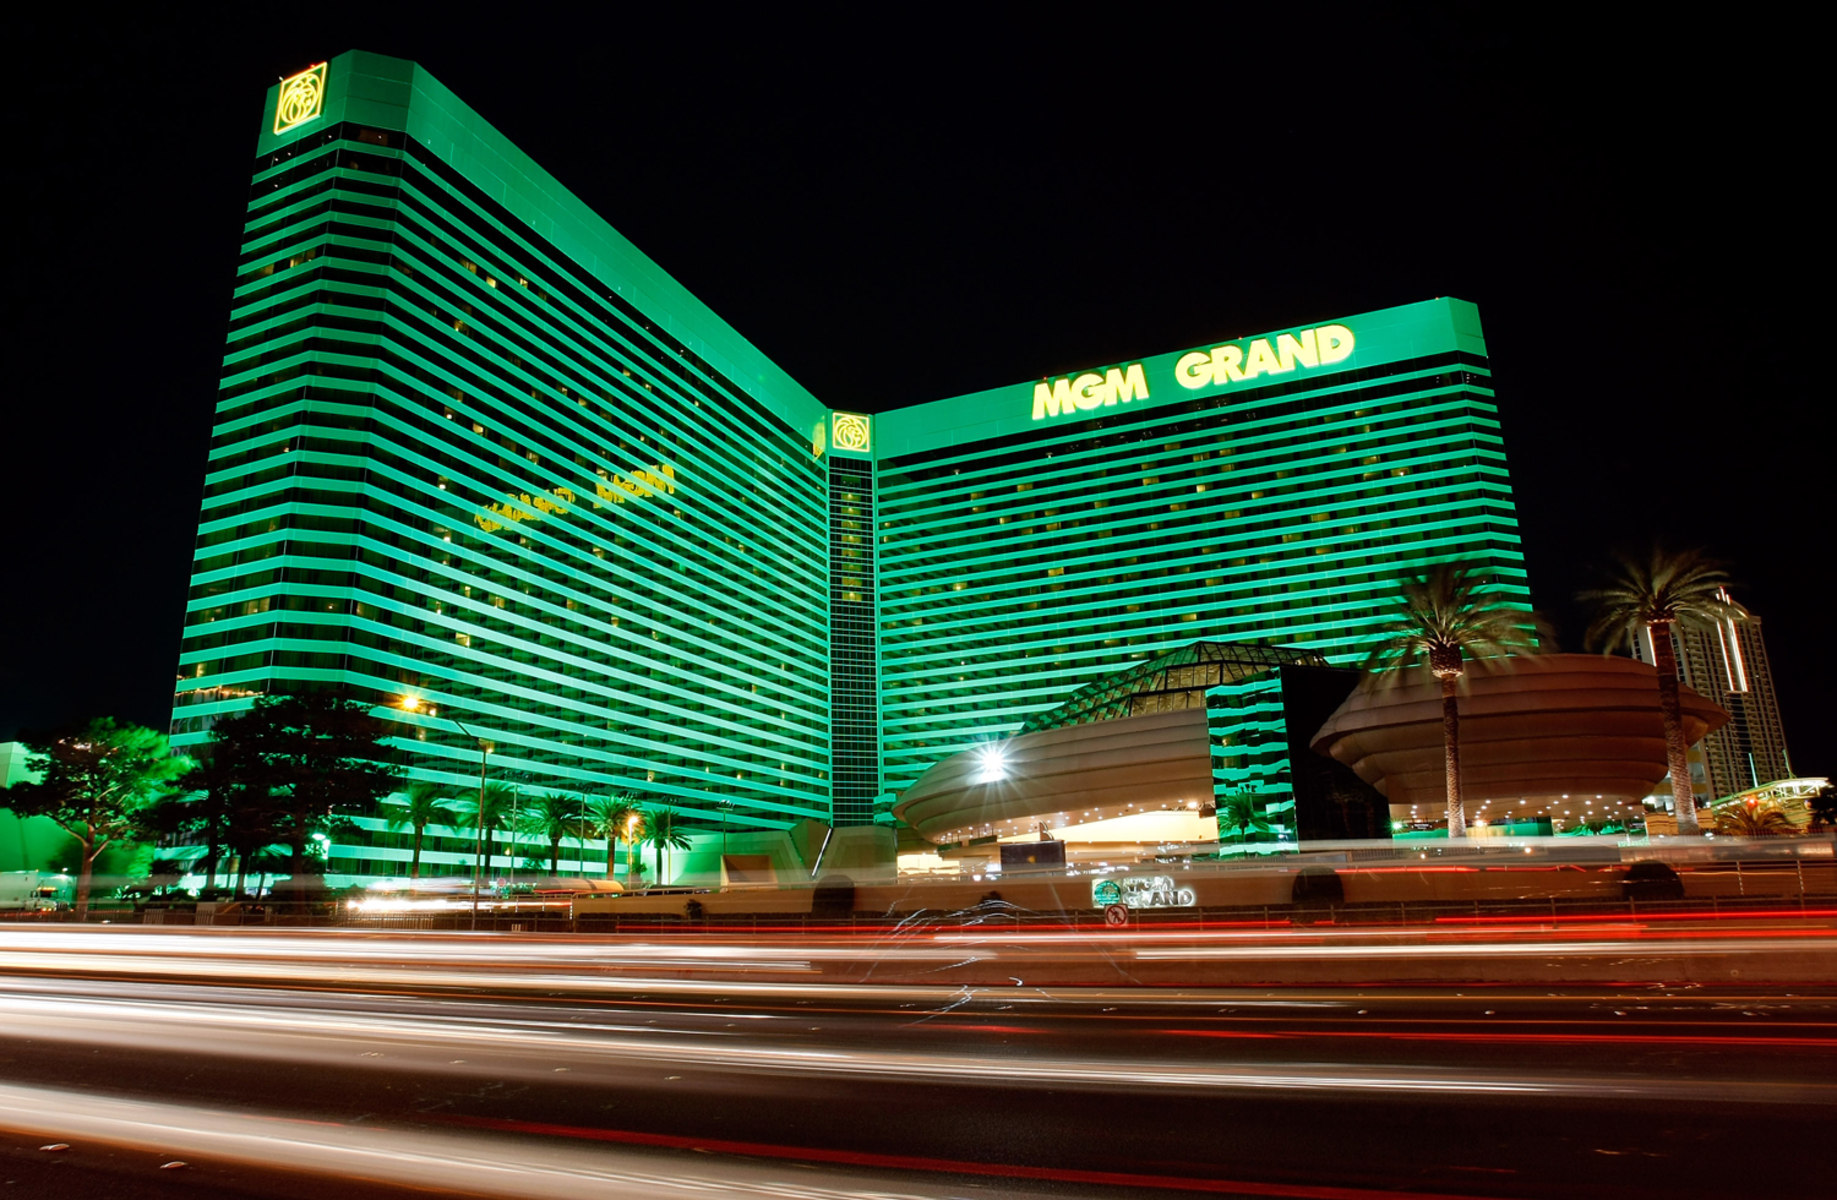 Mgm casino las vegas jobs south african online gambling